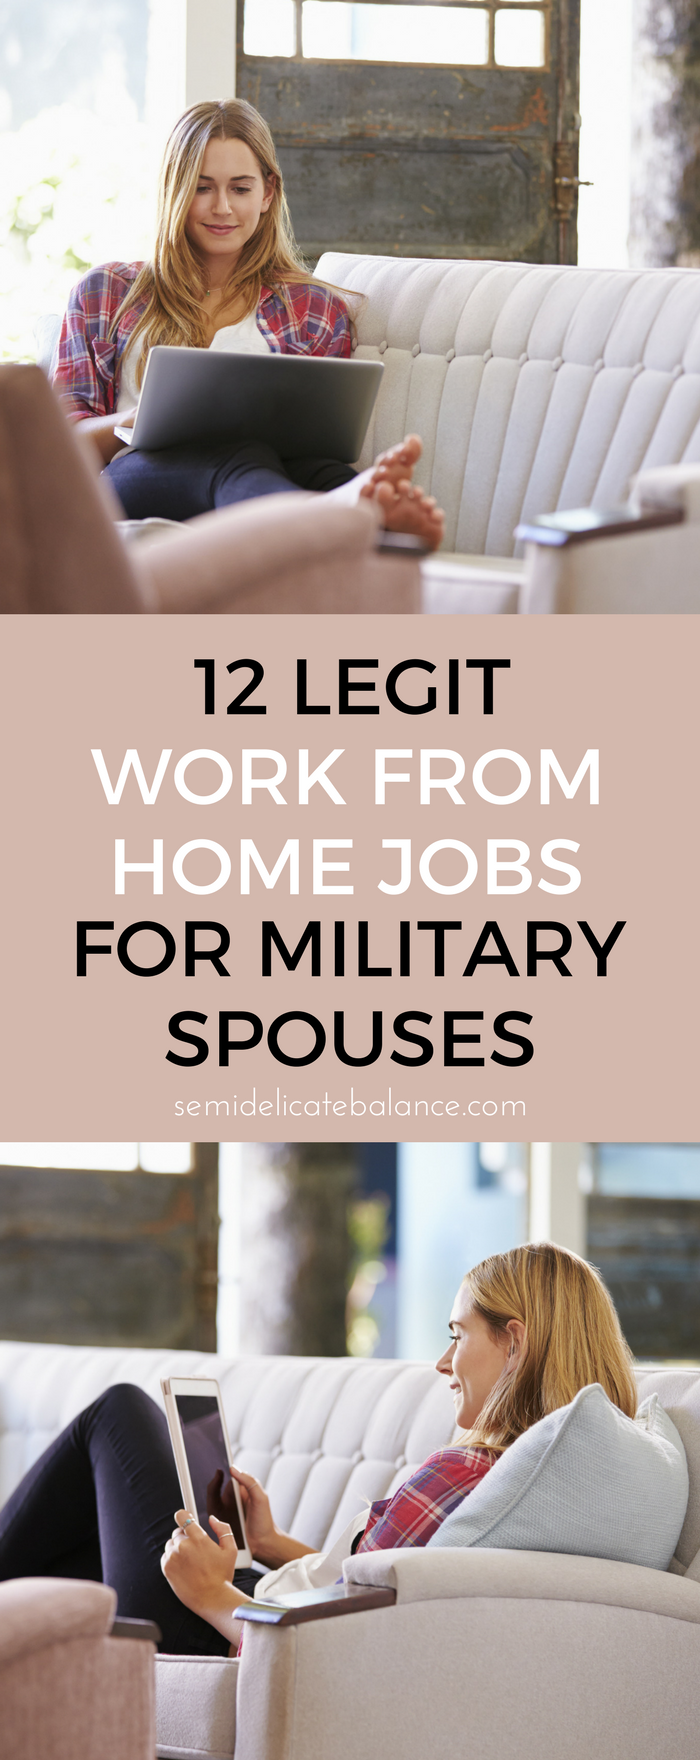 12 Legit Work From Home Jobs For Military Spouses